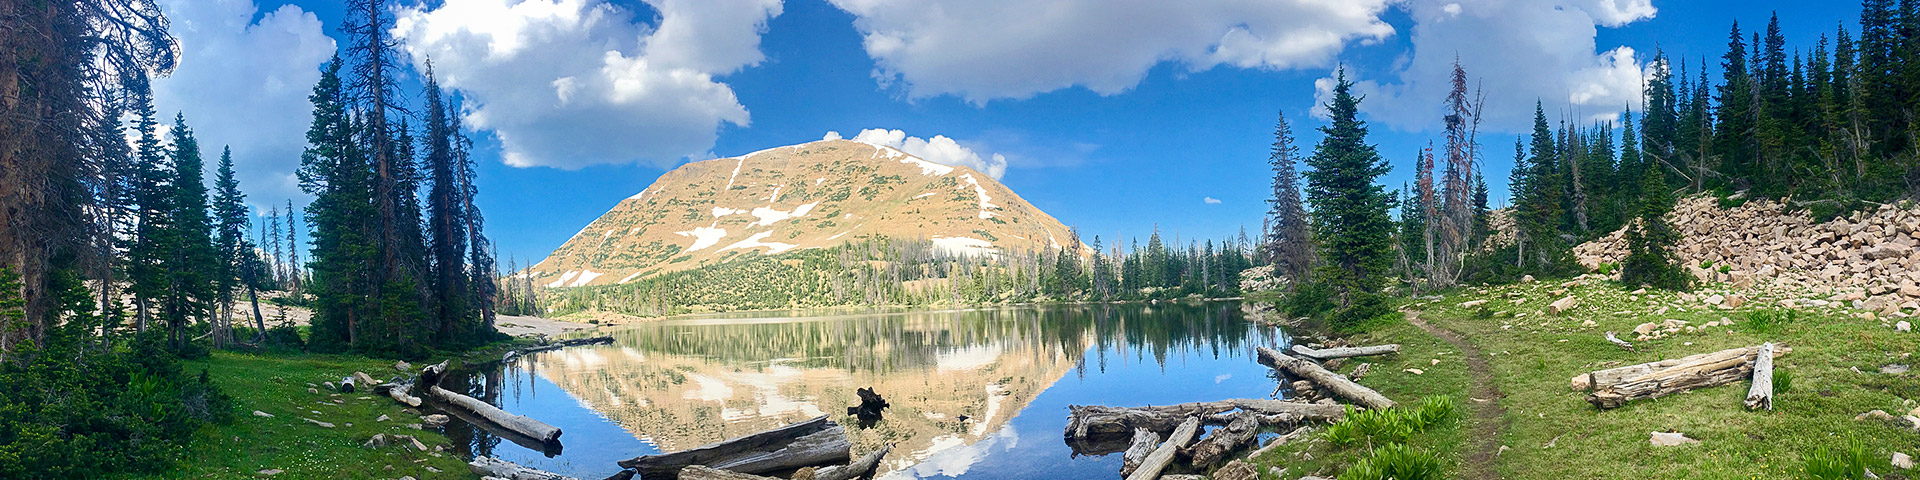 Clyde Lake hike in the Uinta Mountains